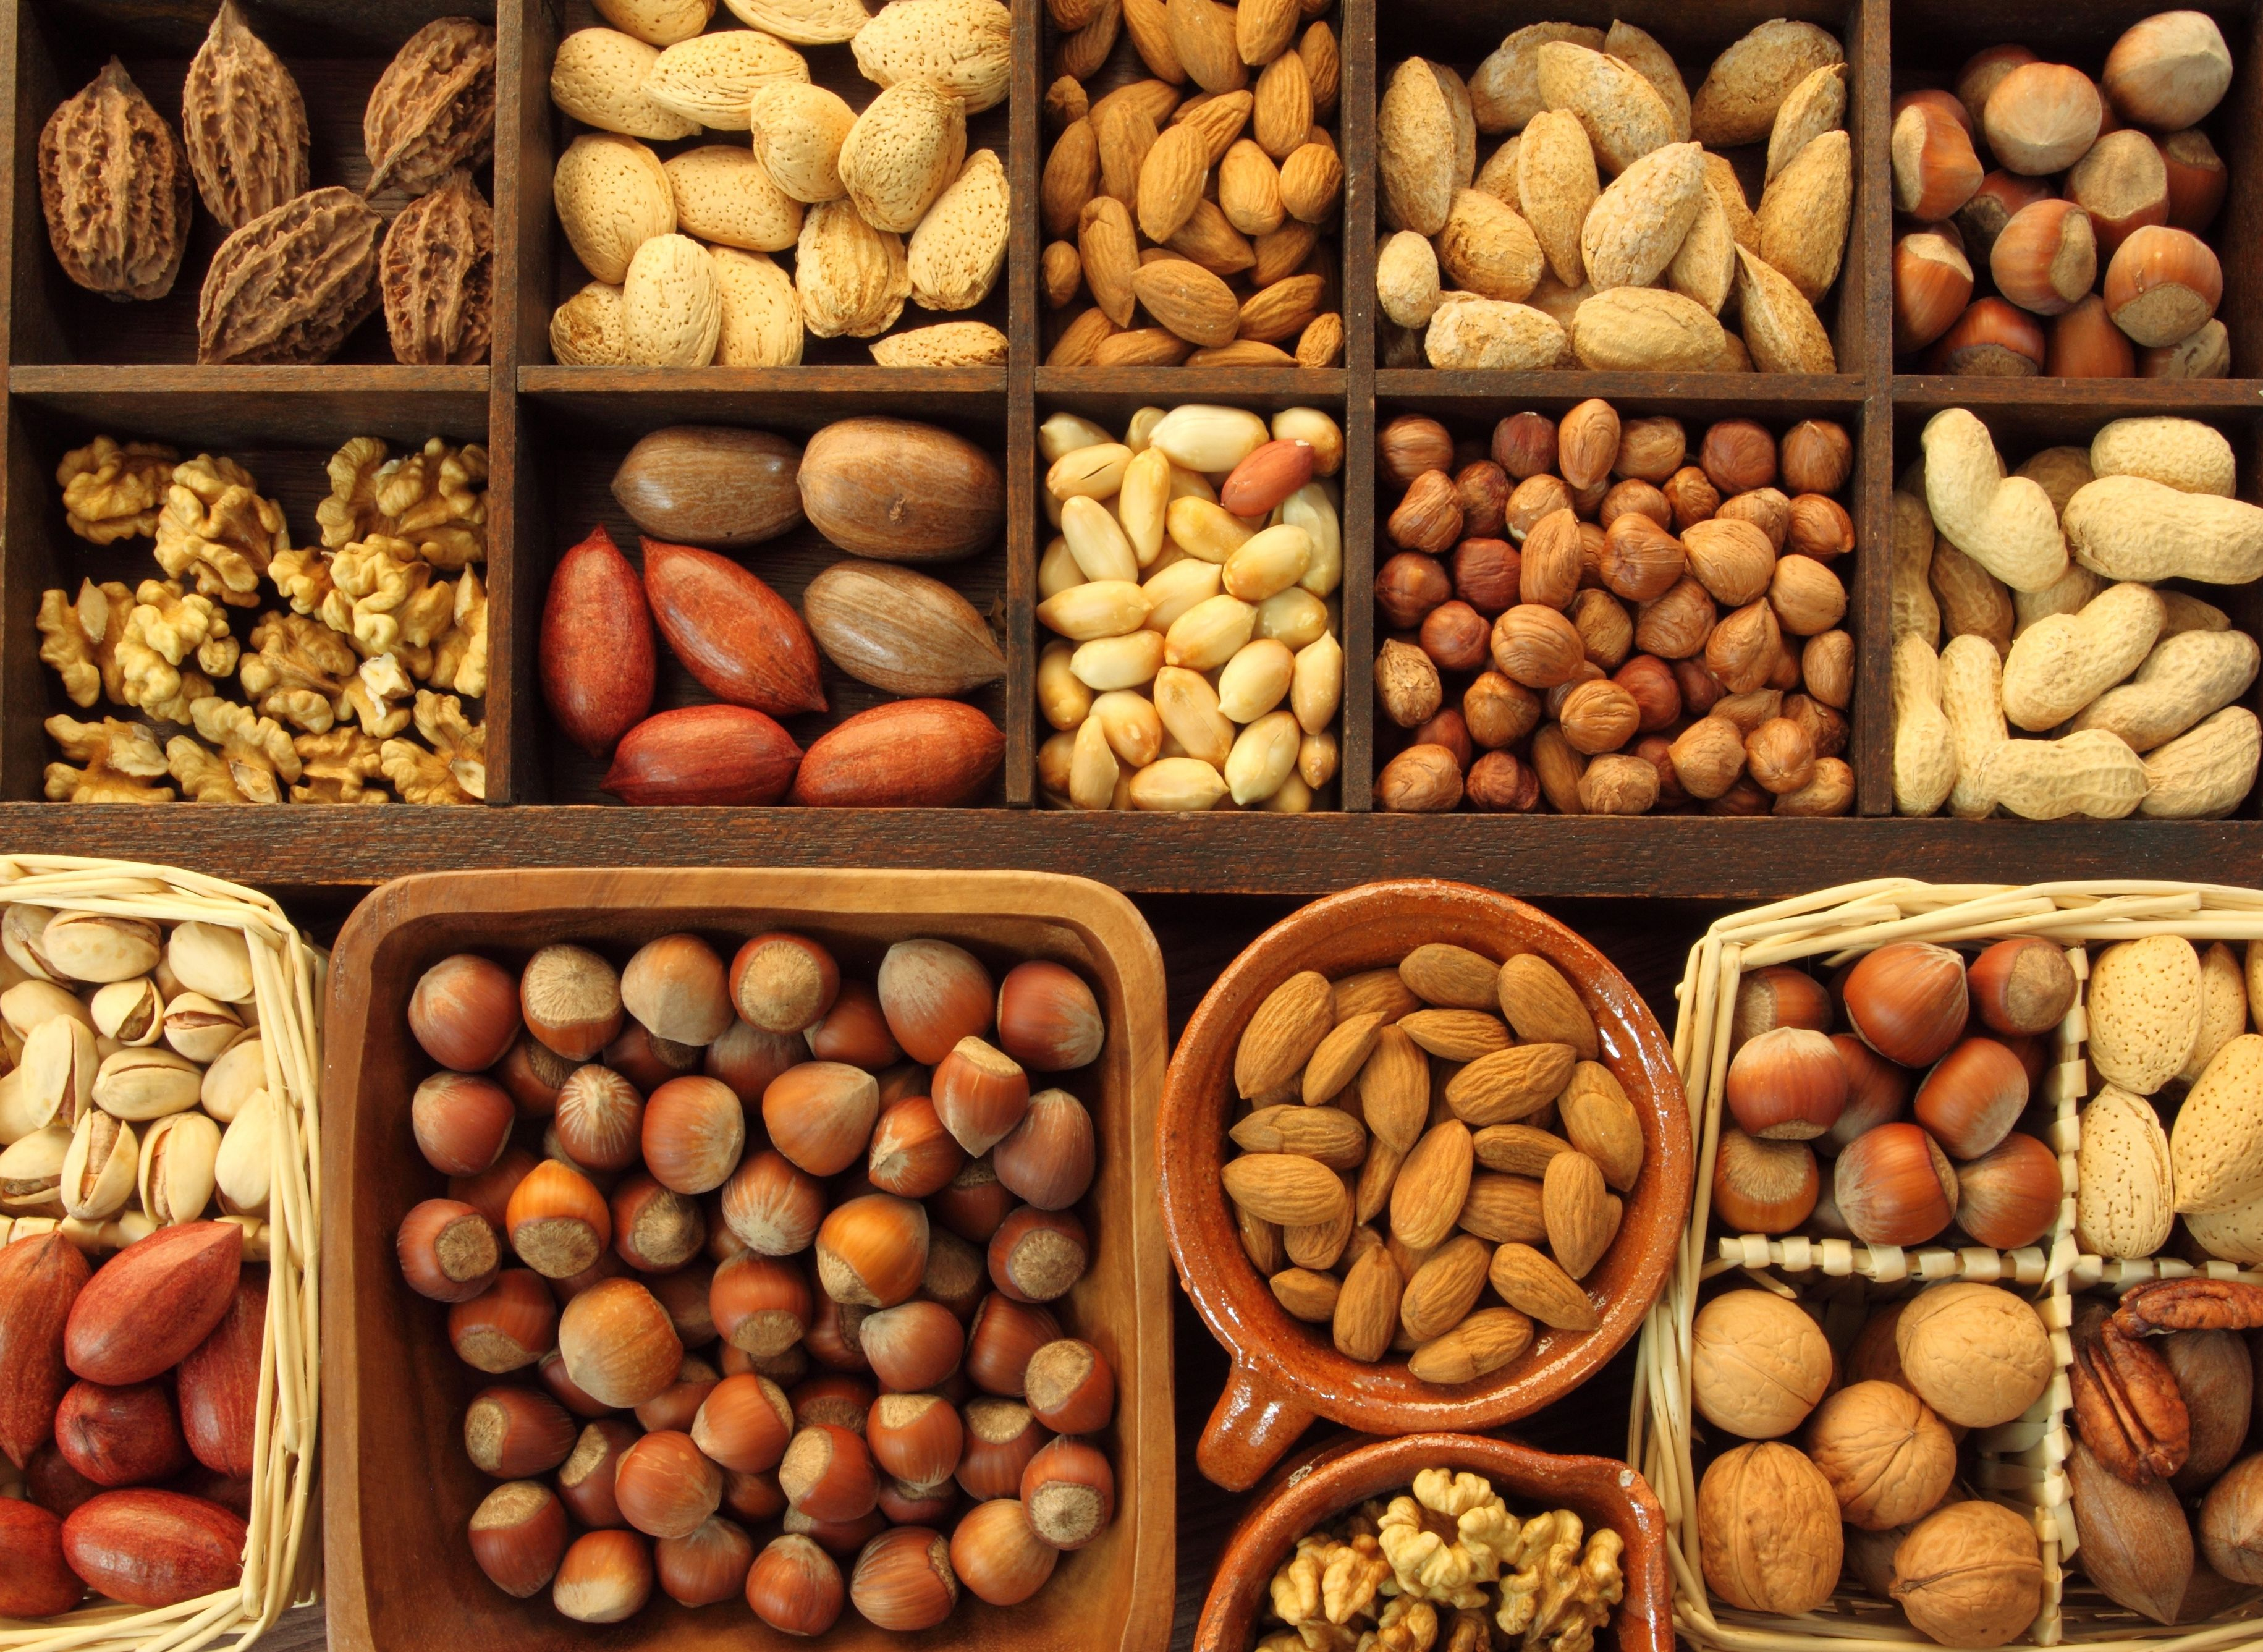 Dry Nuts Hd Free Image: Food Allergen Centre